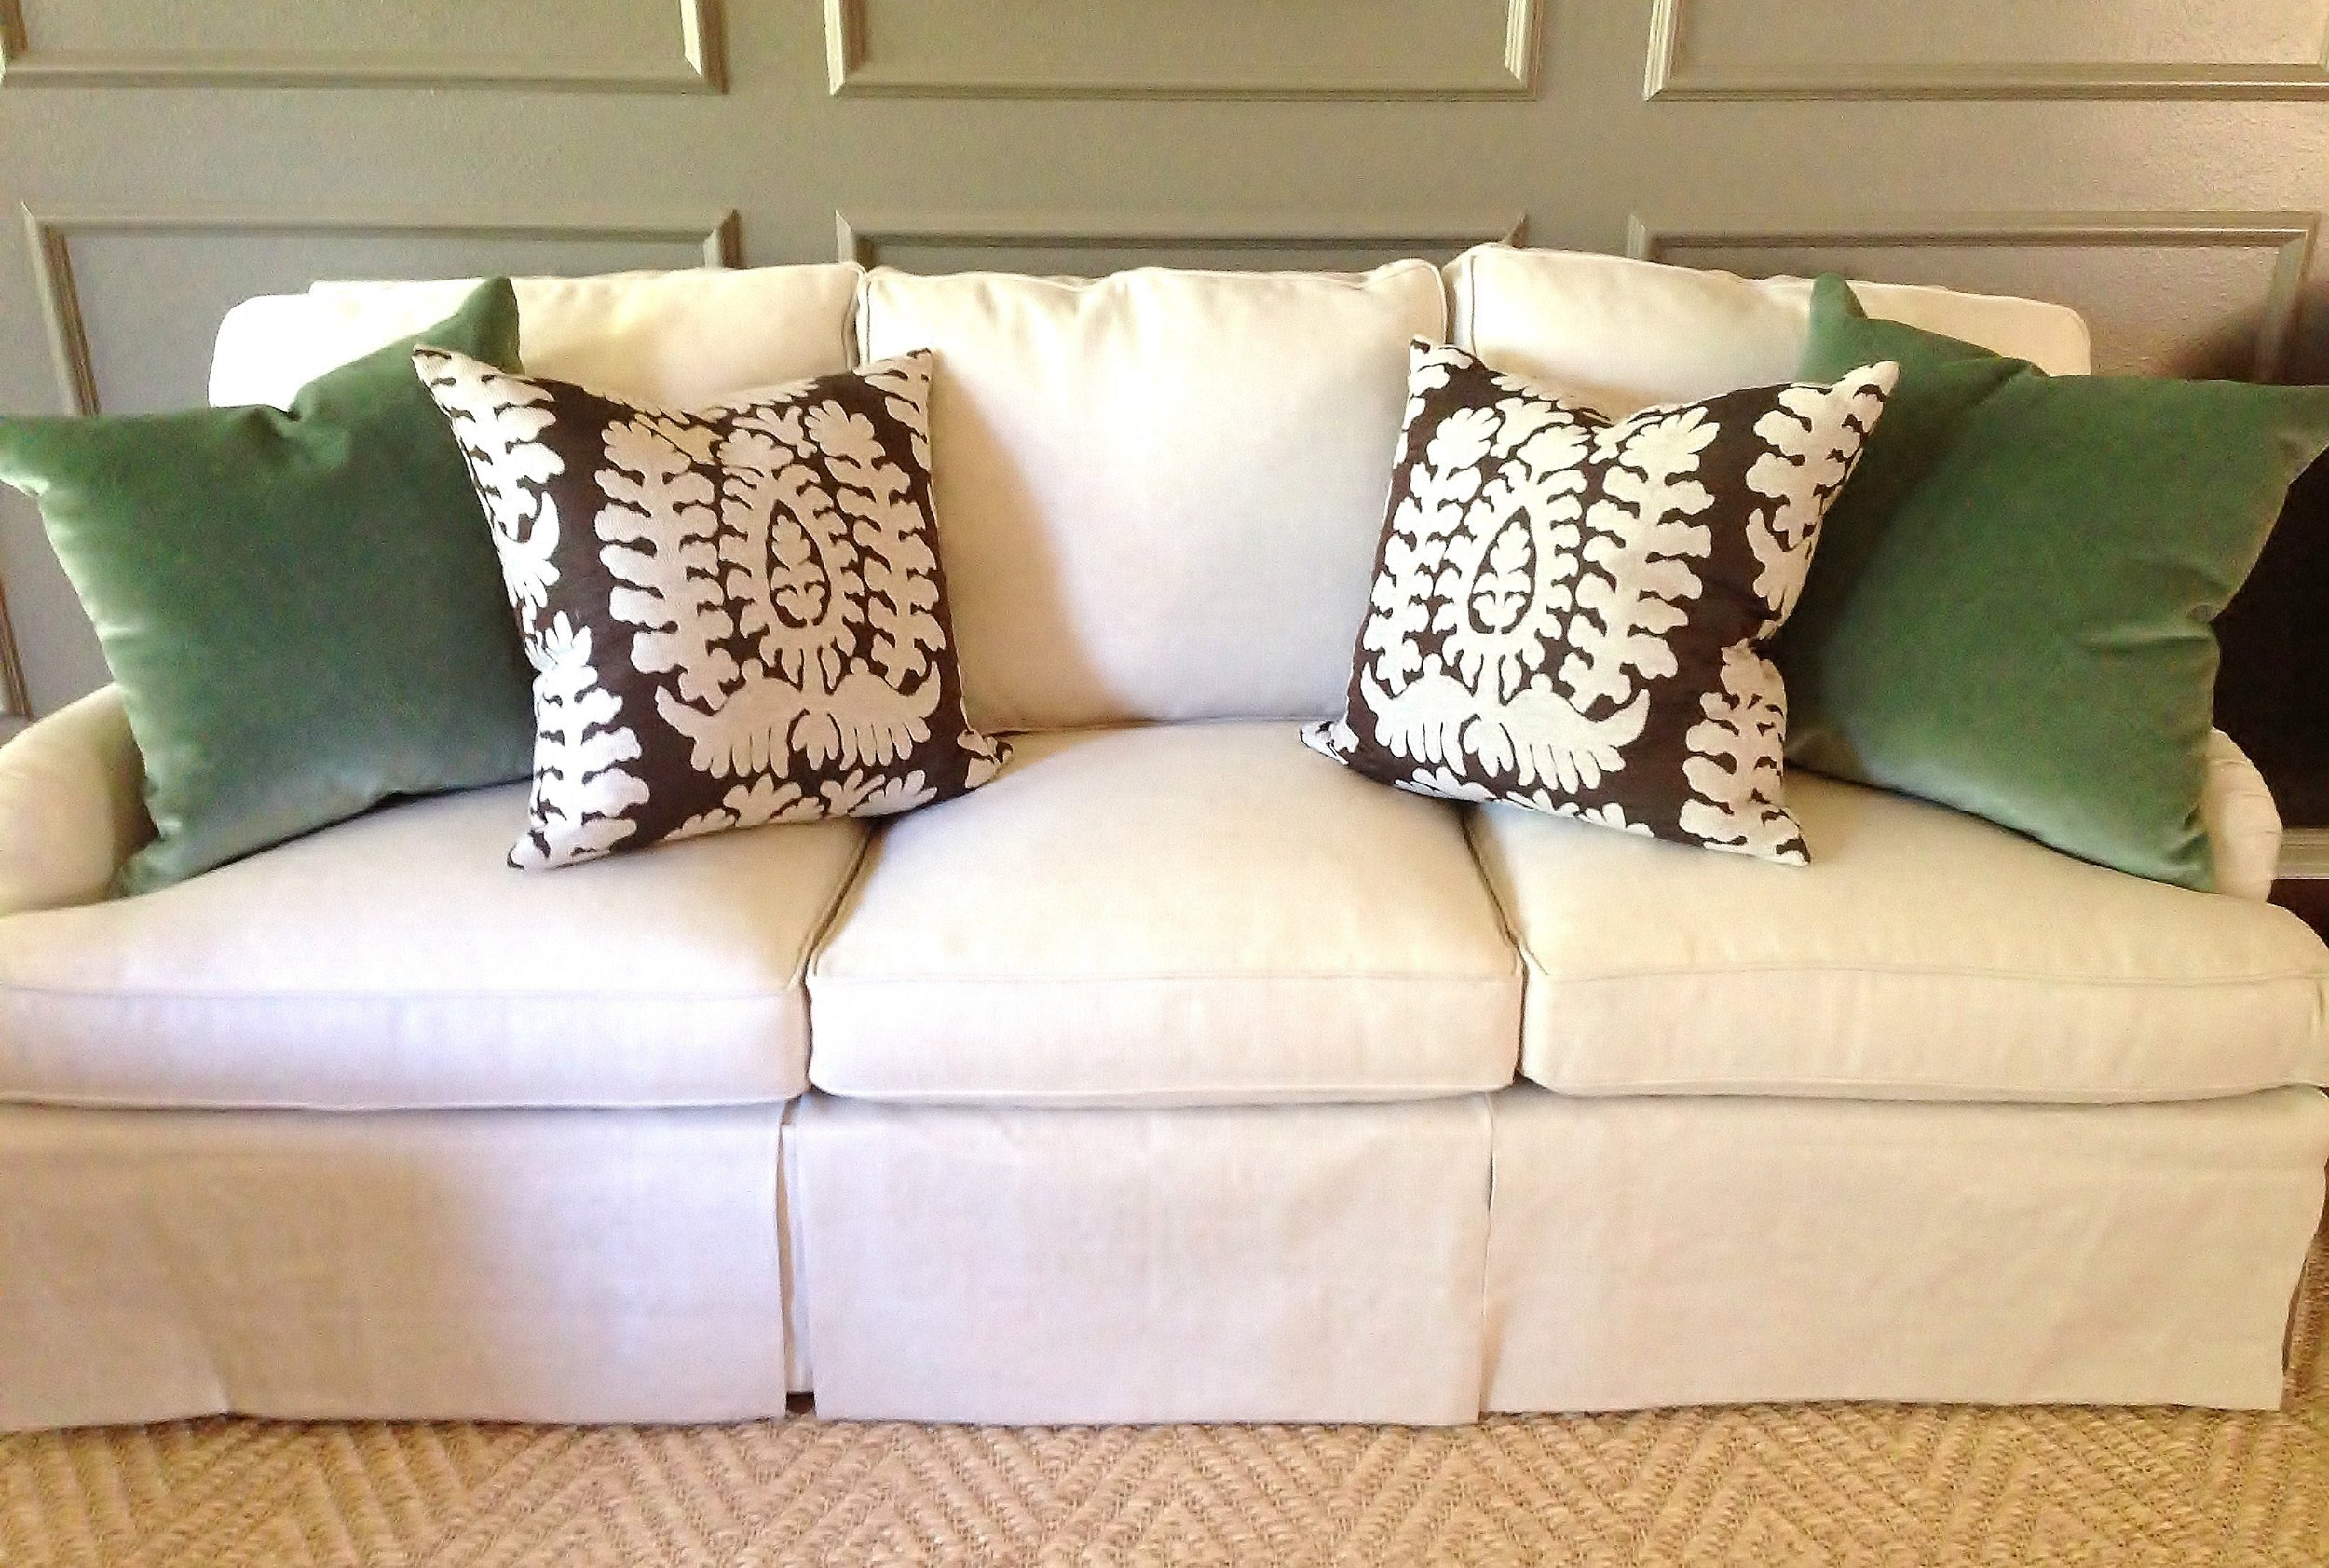 throw pillows for living room couch sconces how to pick perfect decorative your sofa bed or velvet and patterned on neutral designer carla aston sofapillows